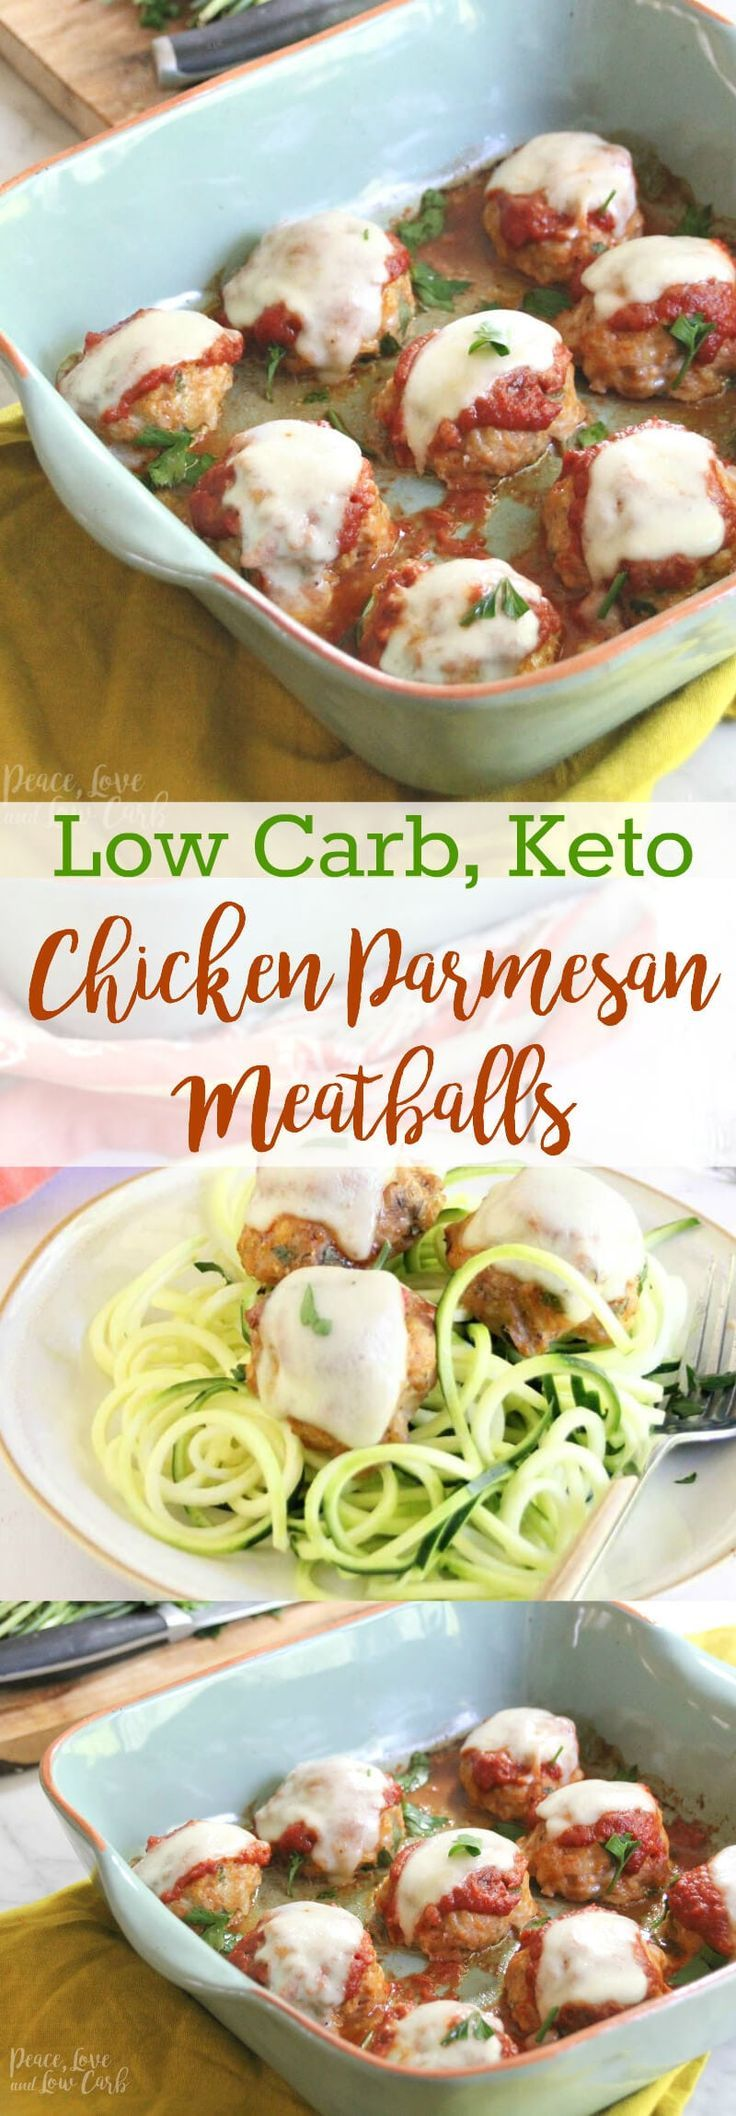 Low Carb Chicken Parmesan Meatballs |Peace Love and Low Carb #chickenparmesan